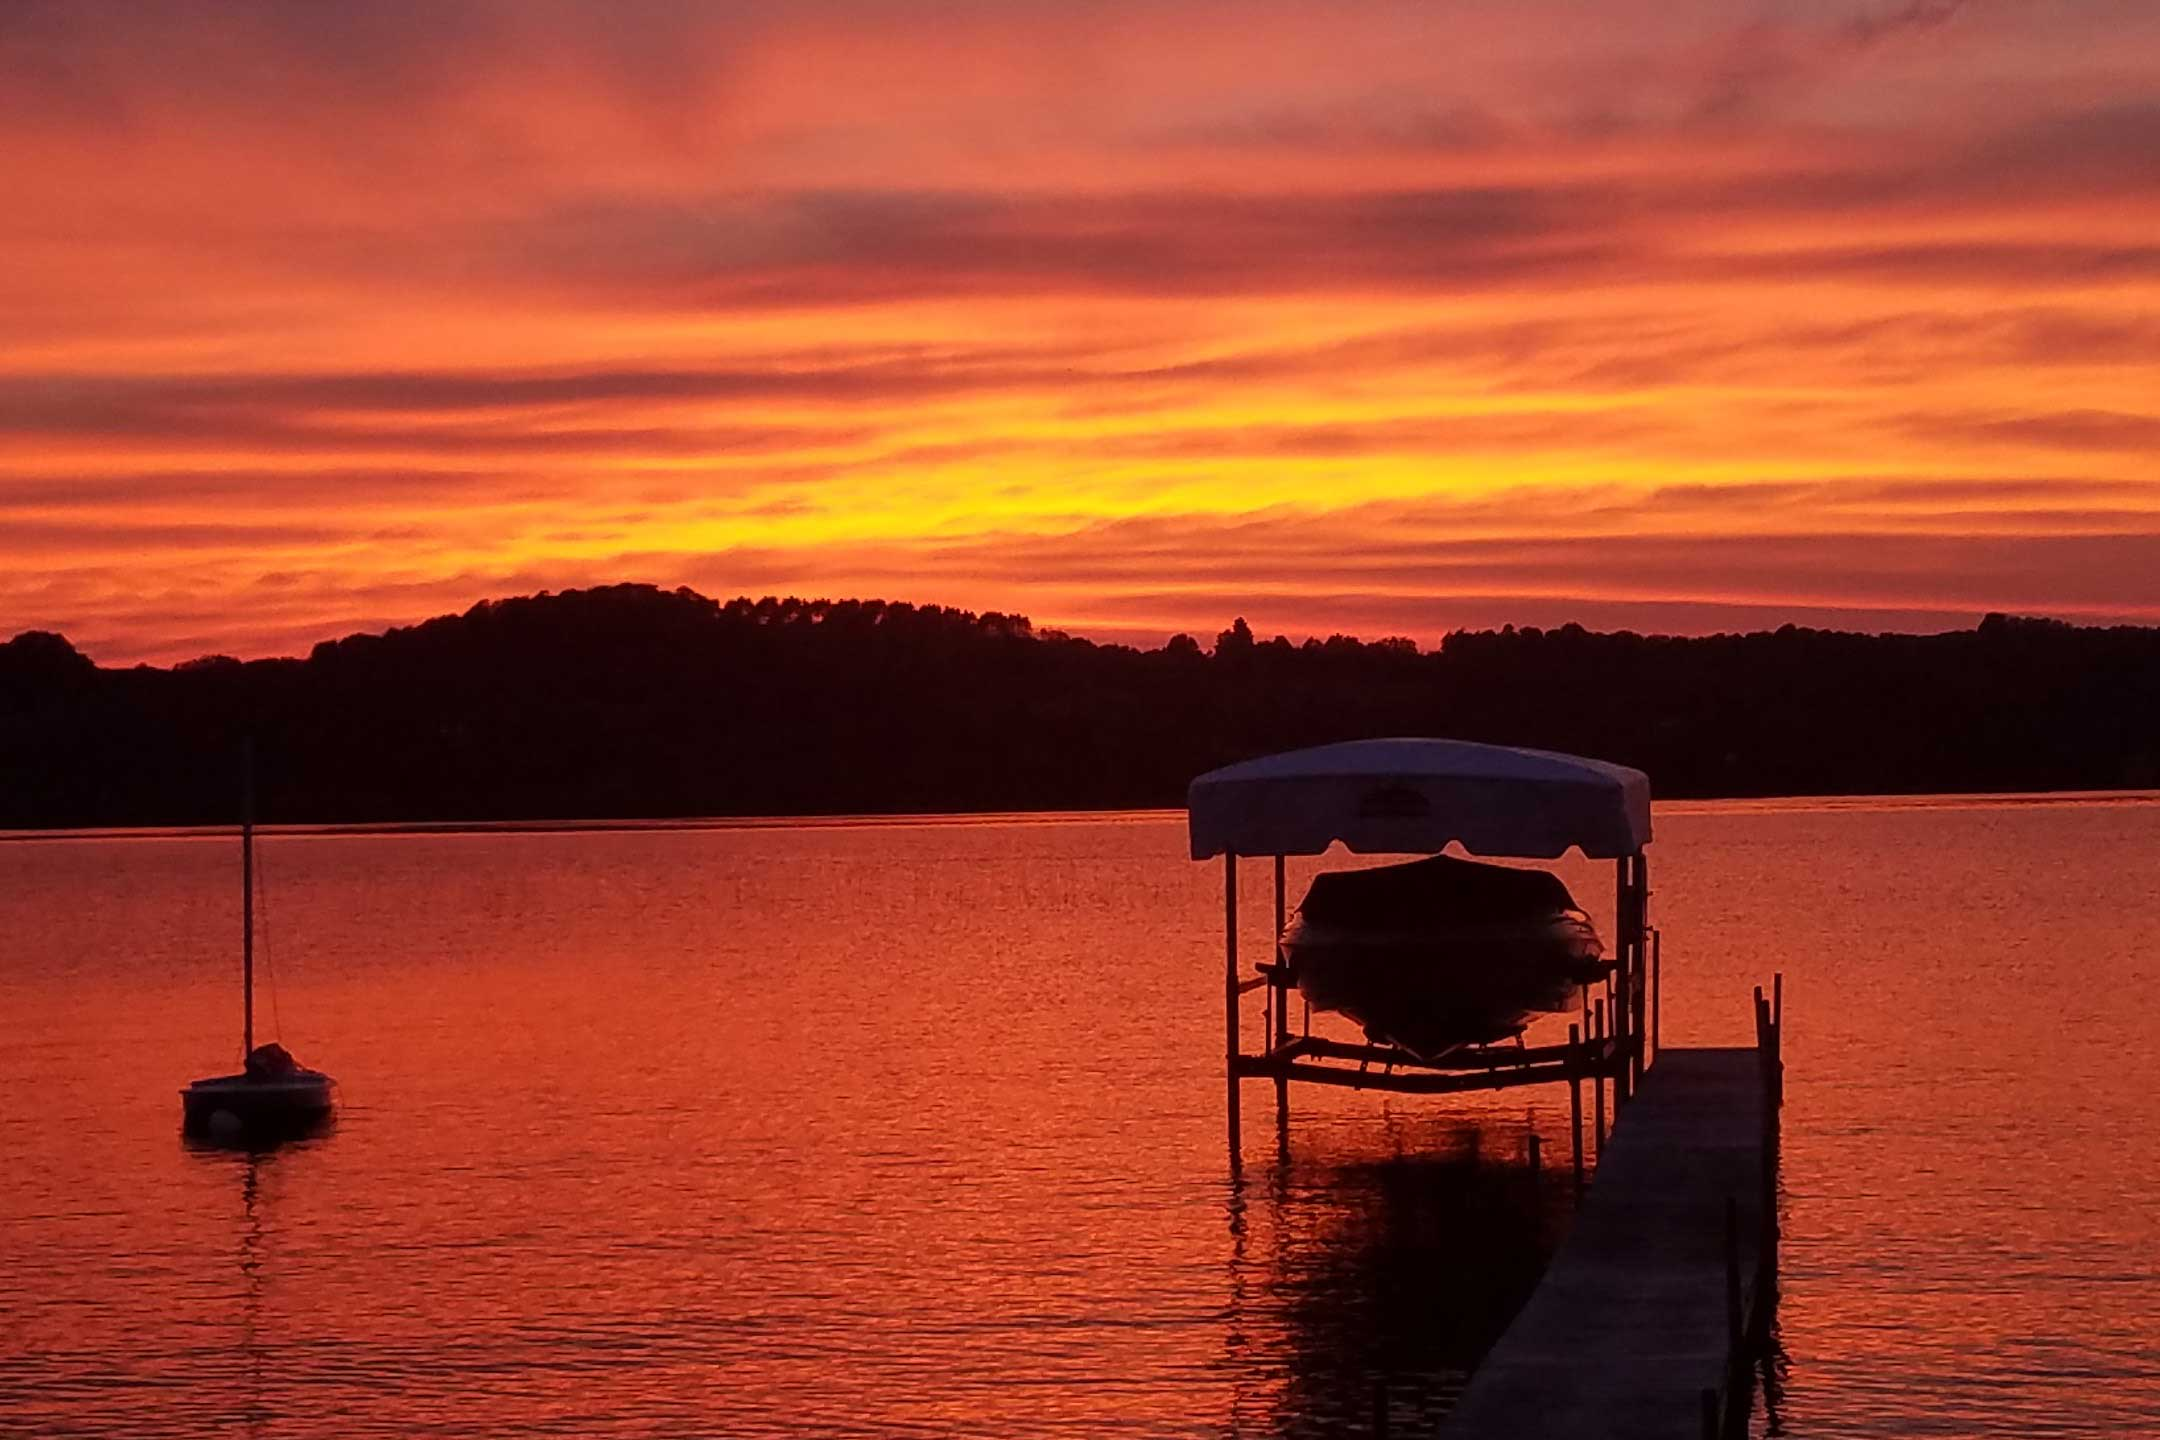 Look forward to captivating sunsets over the lake.